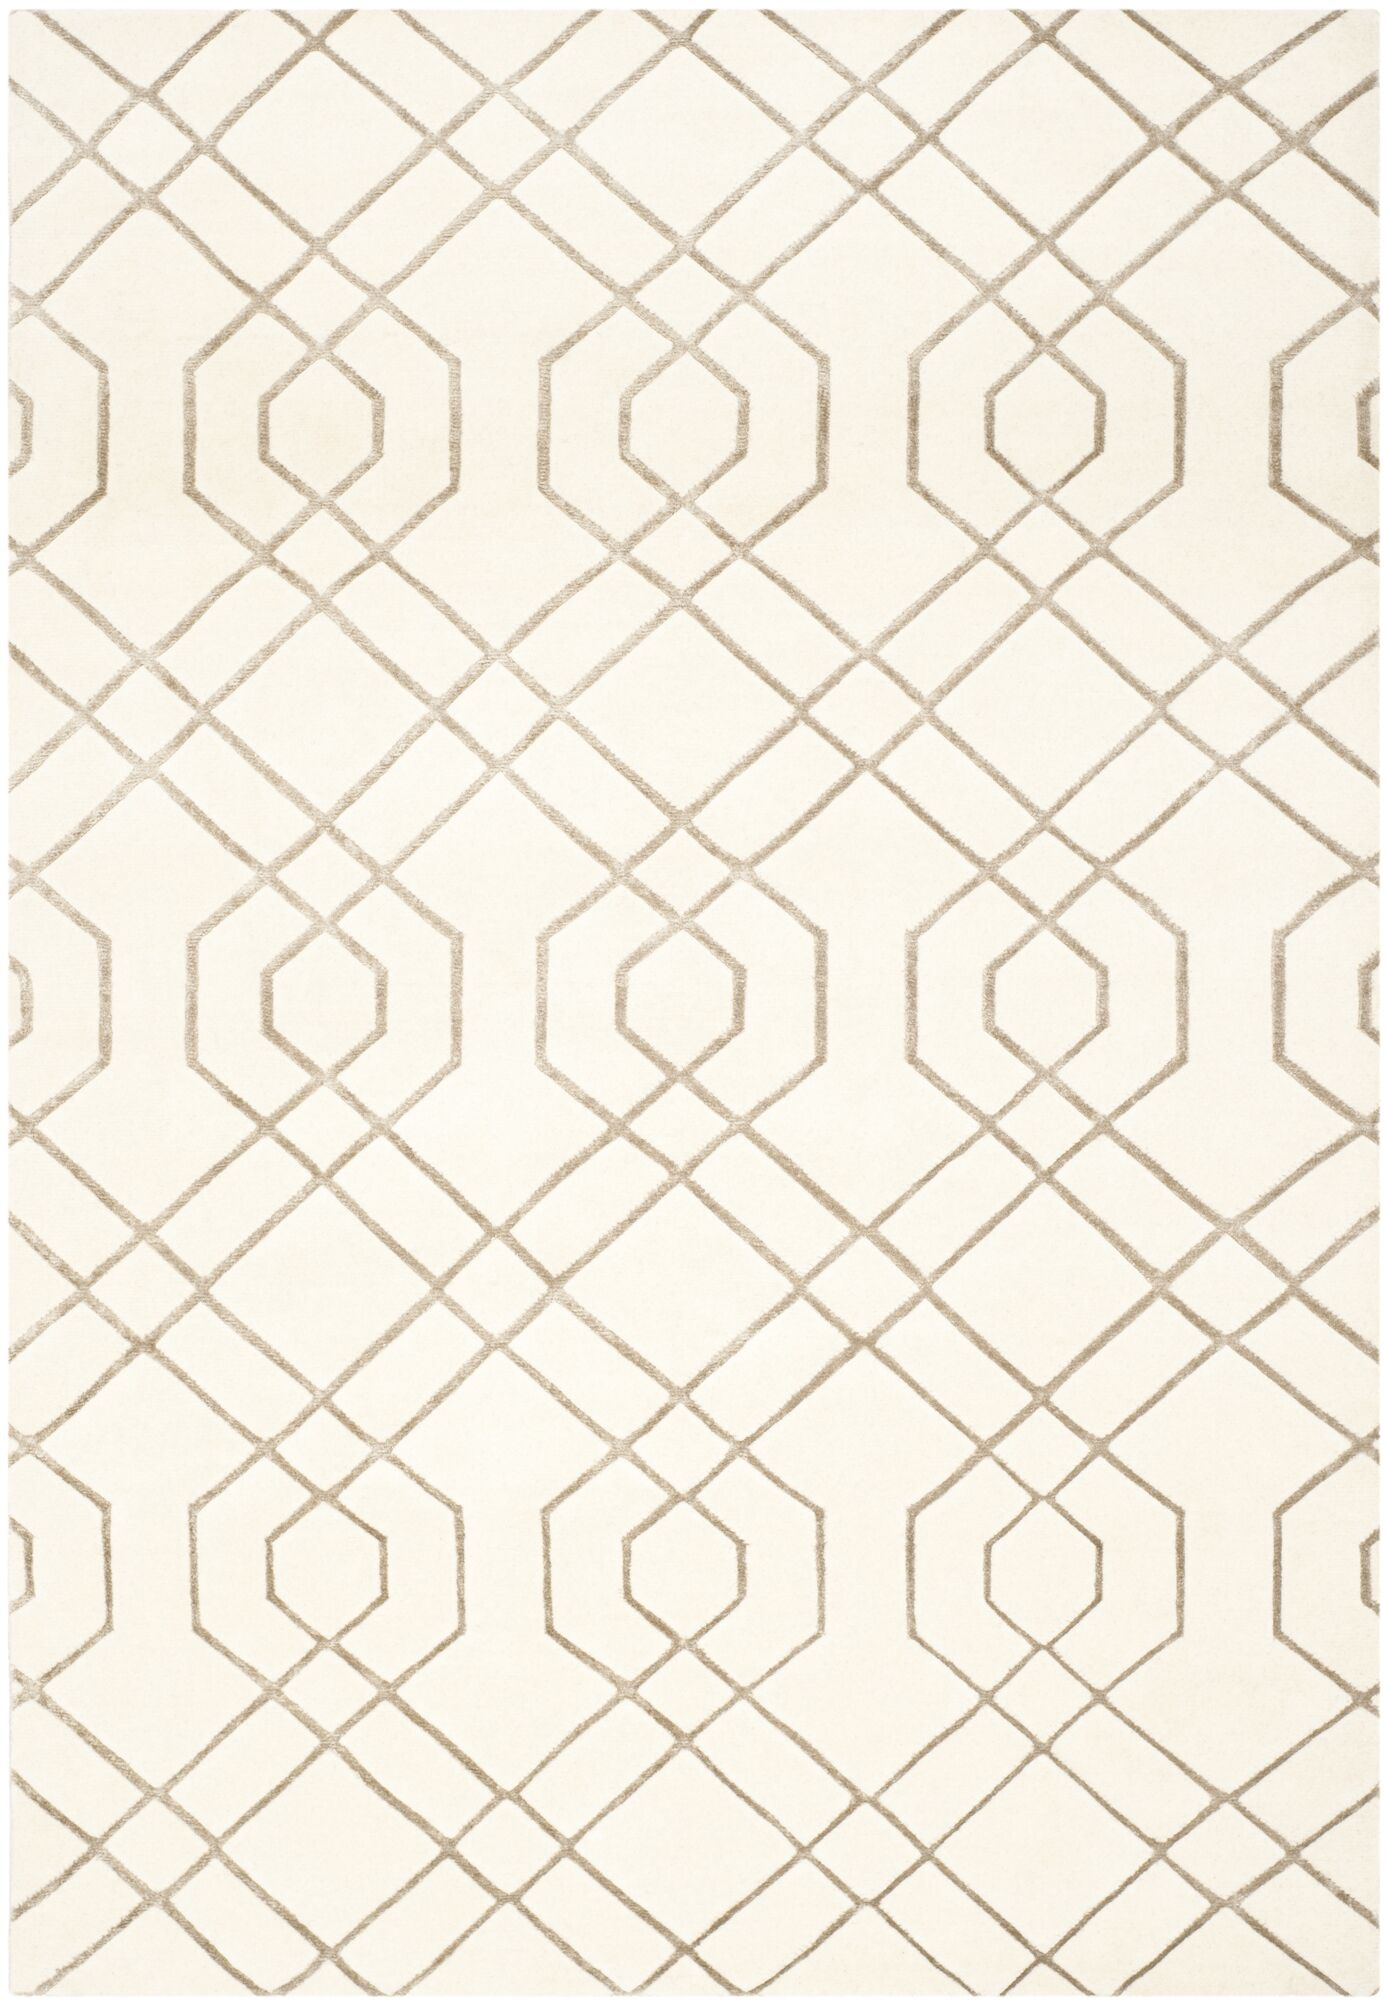 Paramkusham Tibetan Hand Knotted Wool White Area Rug Rug Size: Rectangle 10' x 14'